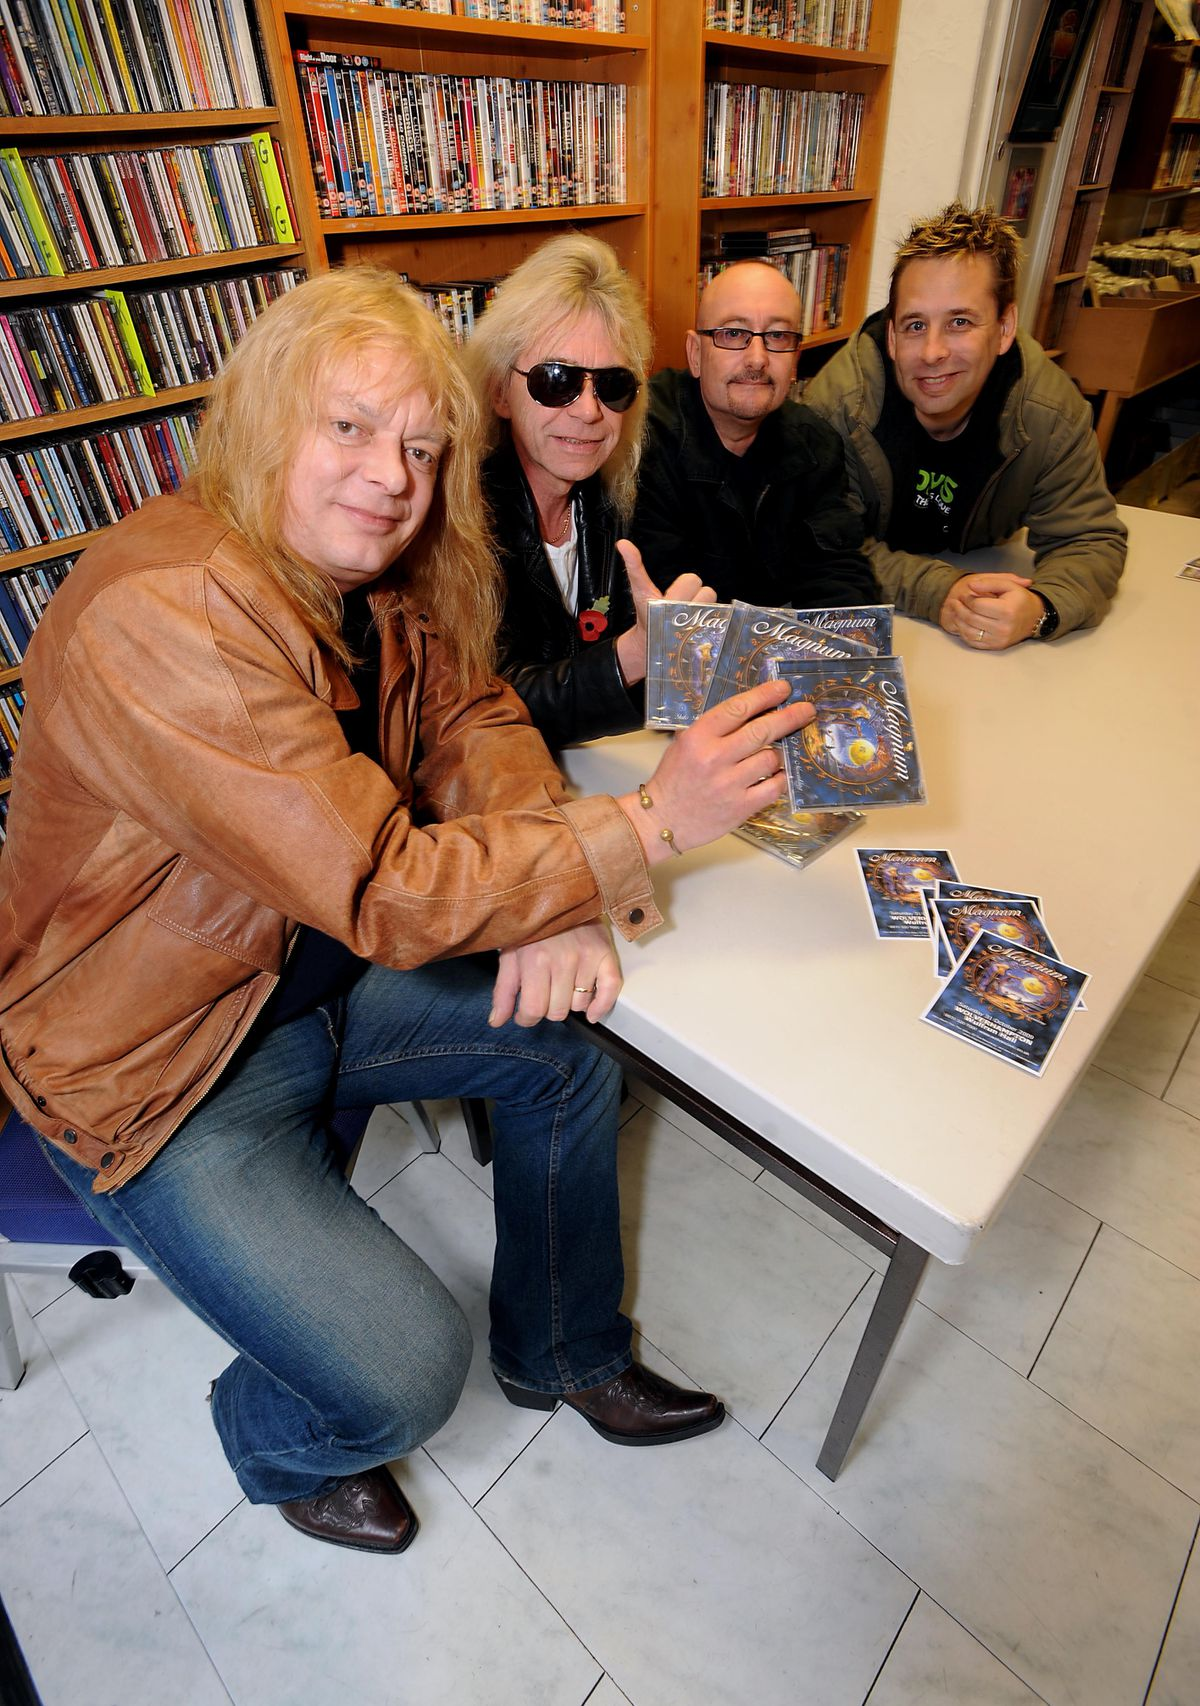 Mark Stanway (left) with fellow Magnum members Bob Catley, Harry James and Al Barrow